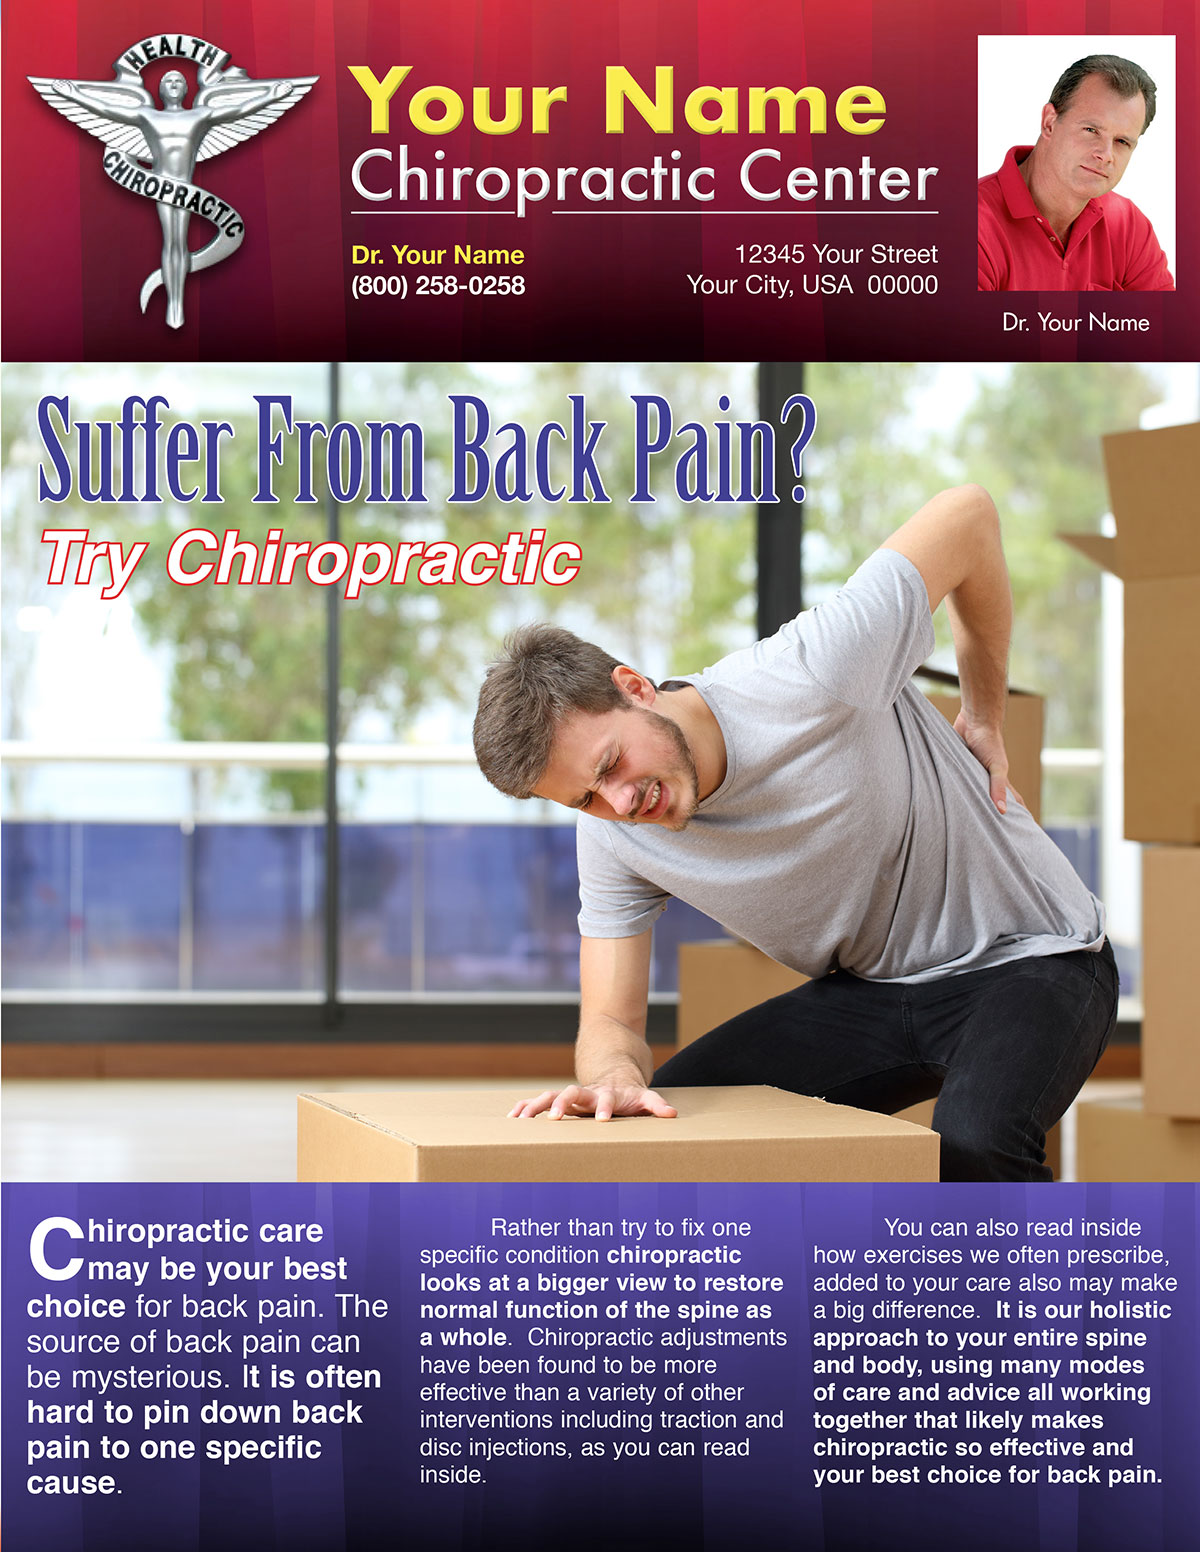 Suffer With Back Pain? Try Chiropractic